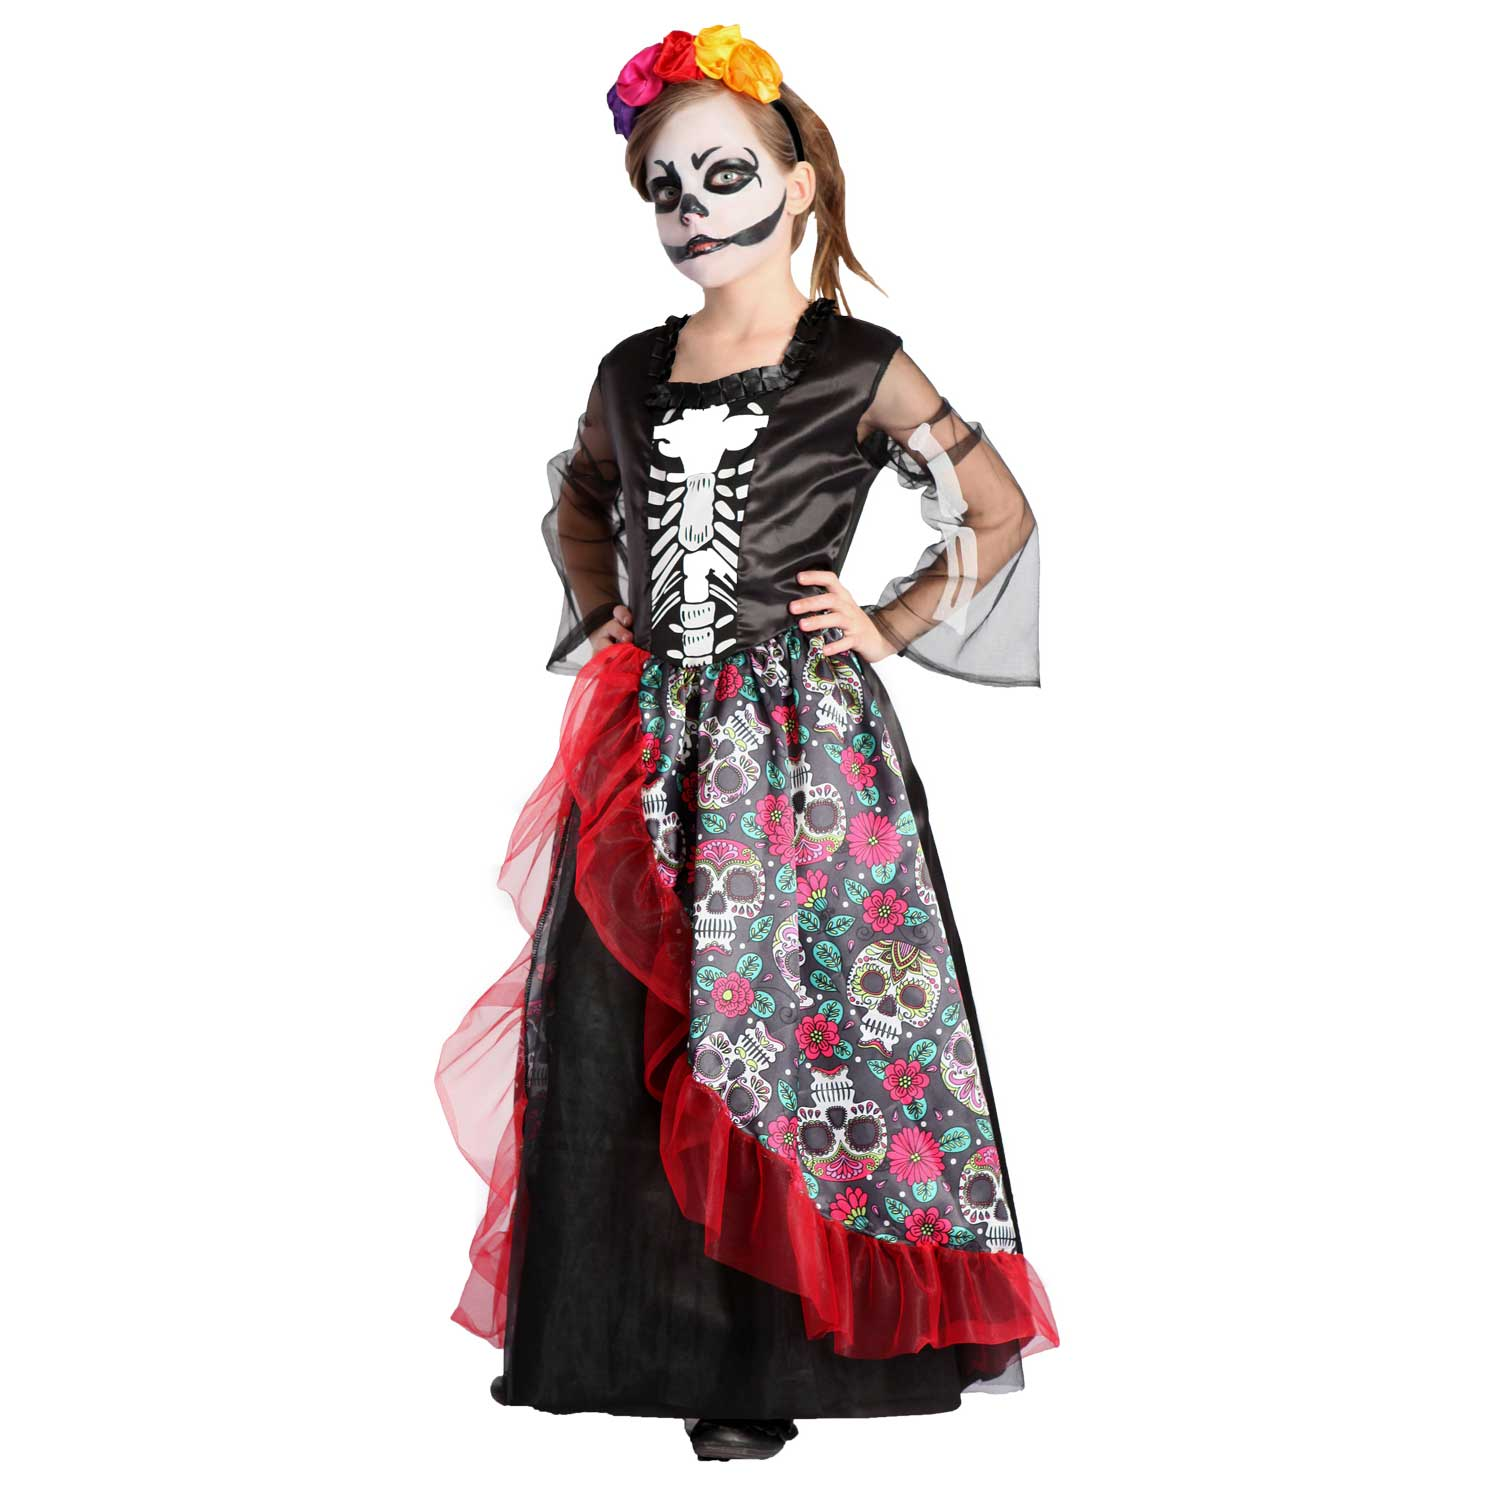 Girl\u2019s Day of the Dead Scary Halloween Dress Costume